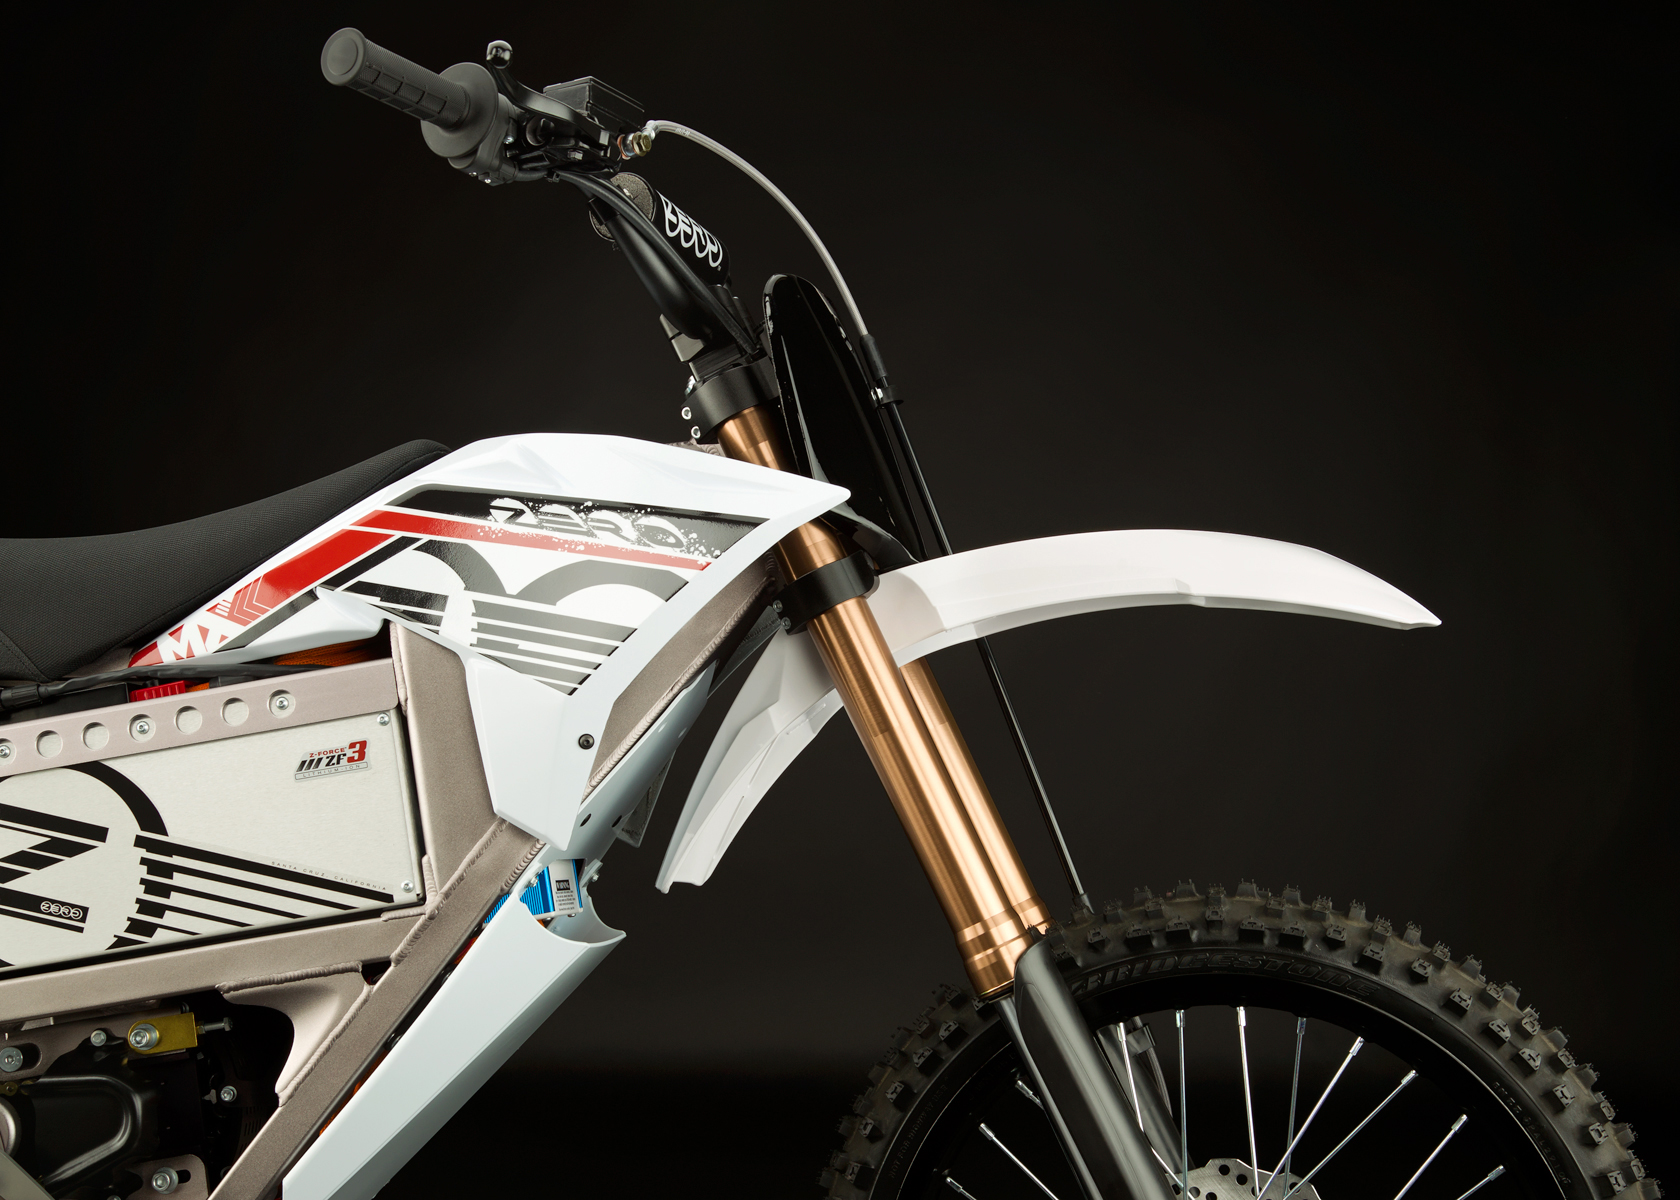 2012 Zero MX Electric Motorcycle: Front Fork